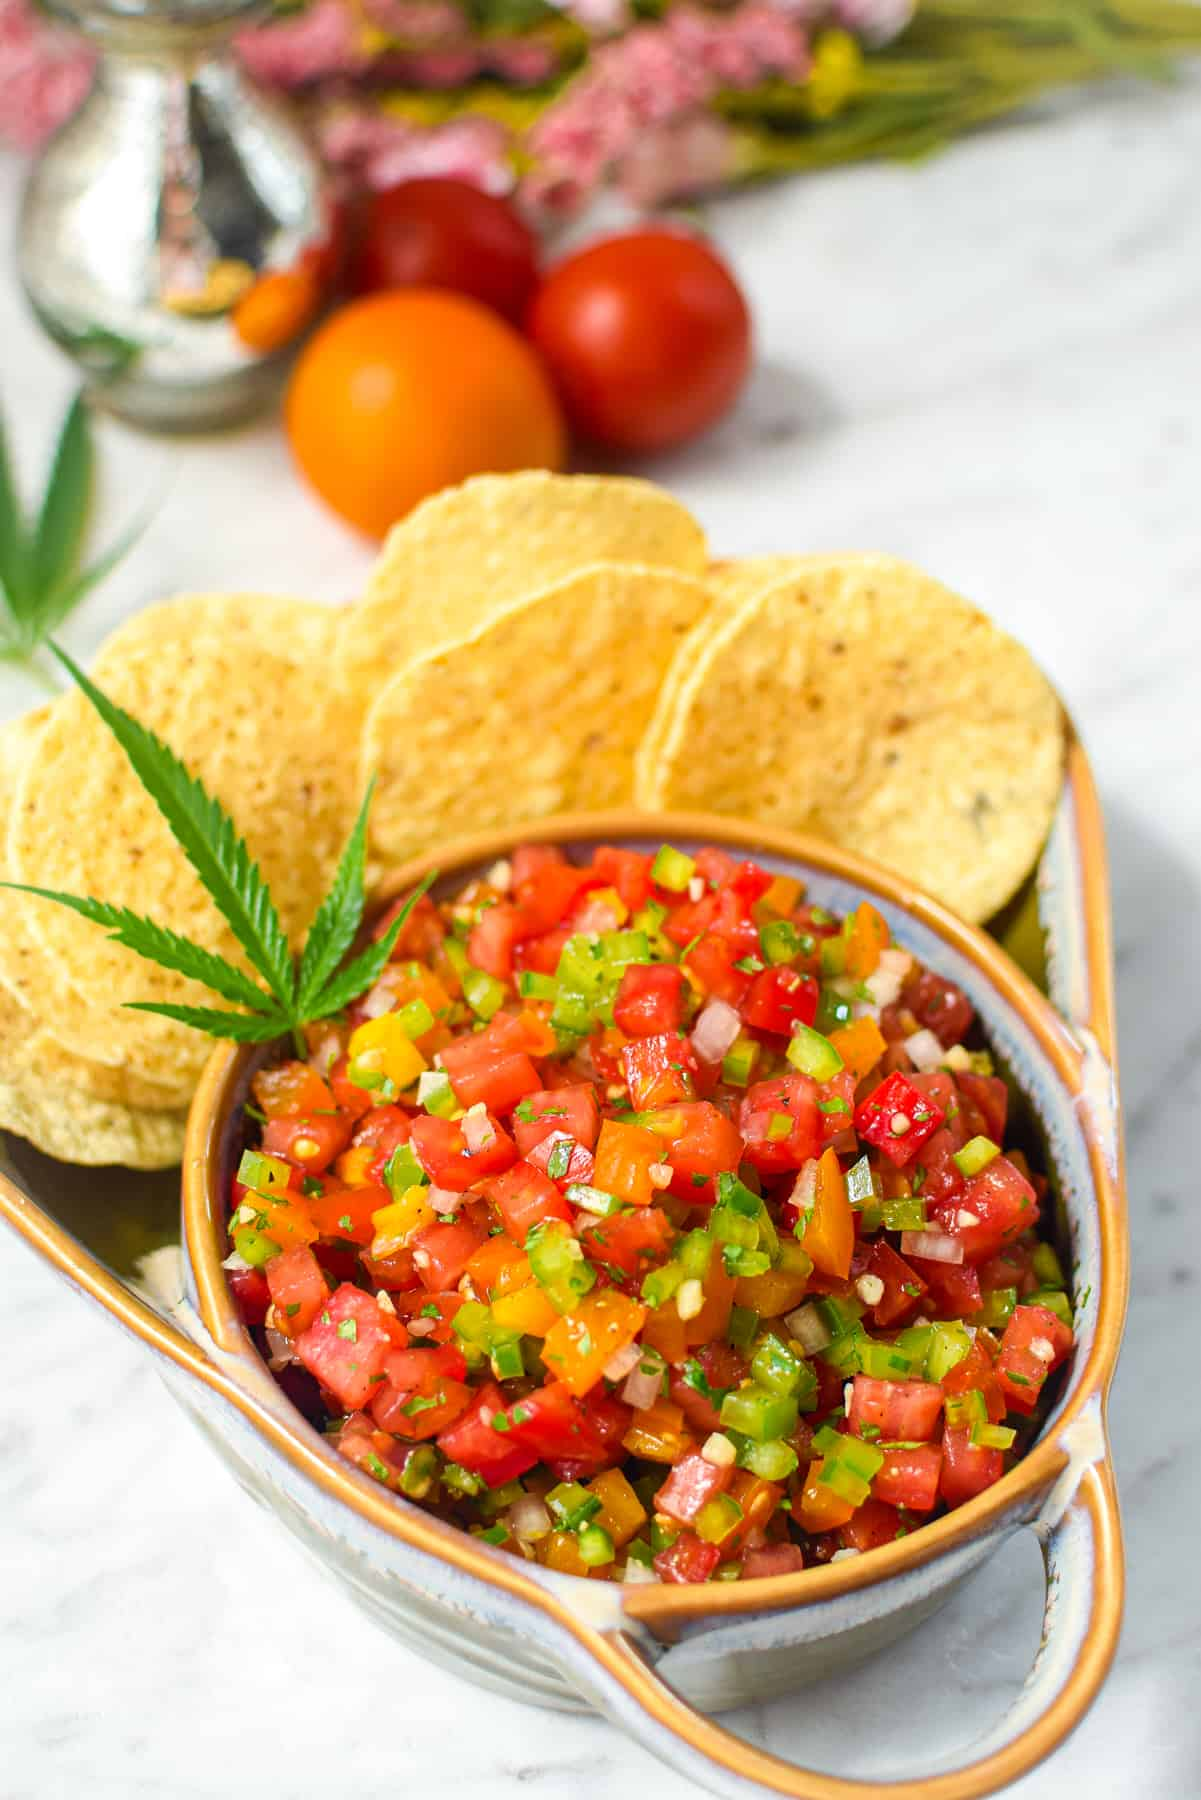 A finished bowl of cannabis infused salsa garnished with a cannabis fan leaf